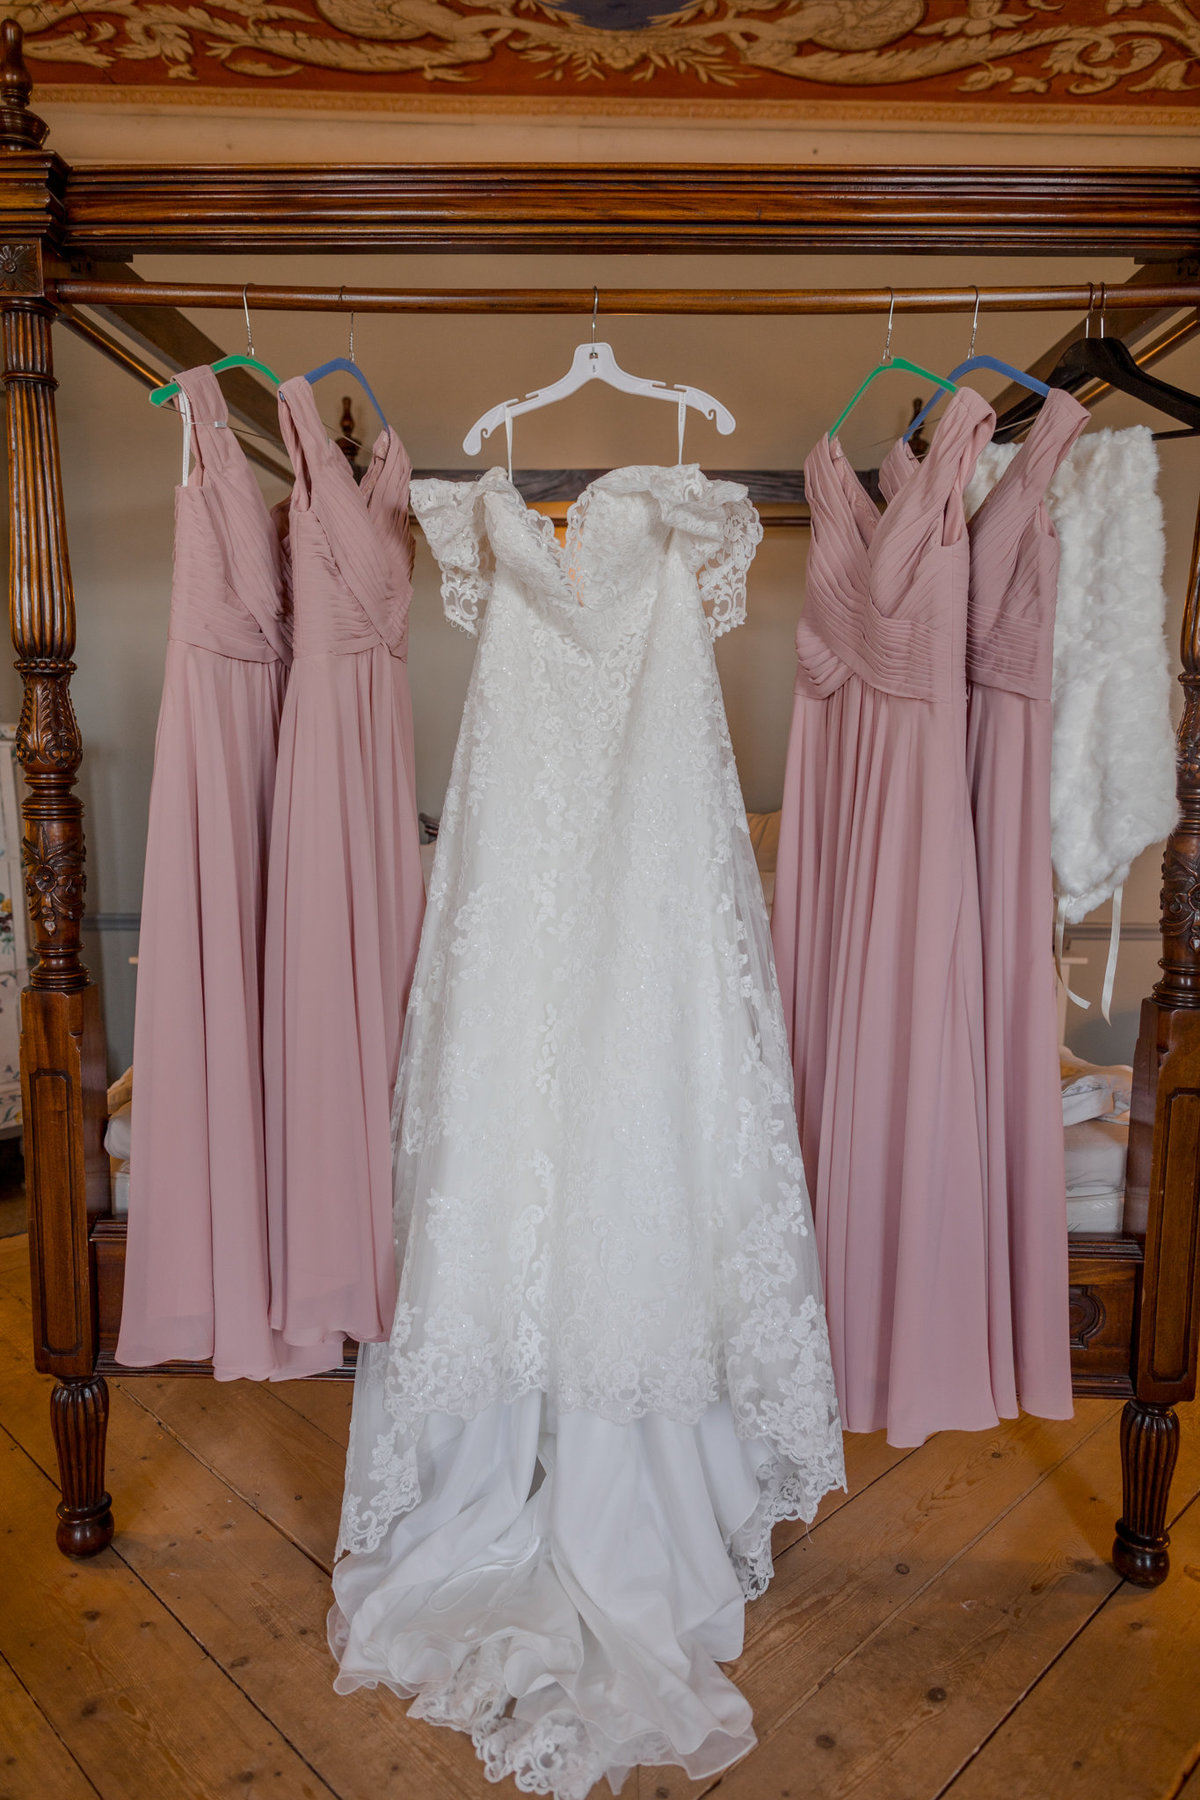 A closeup of the bridal wedding gown and the two pink bridesmaid dresses on each side